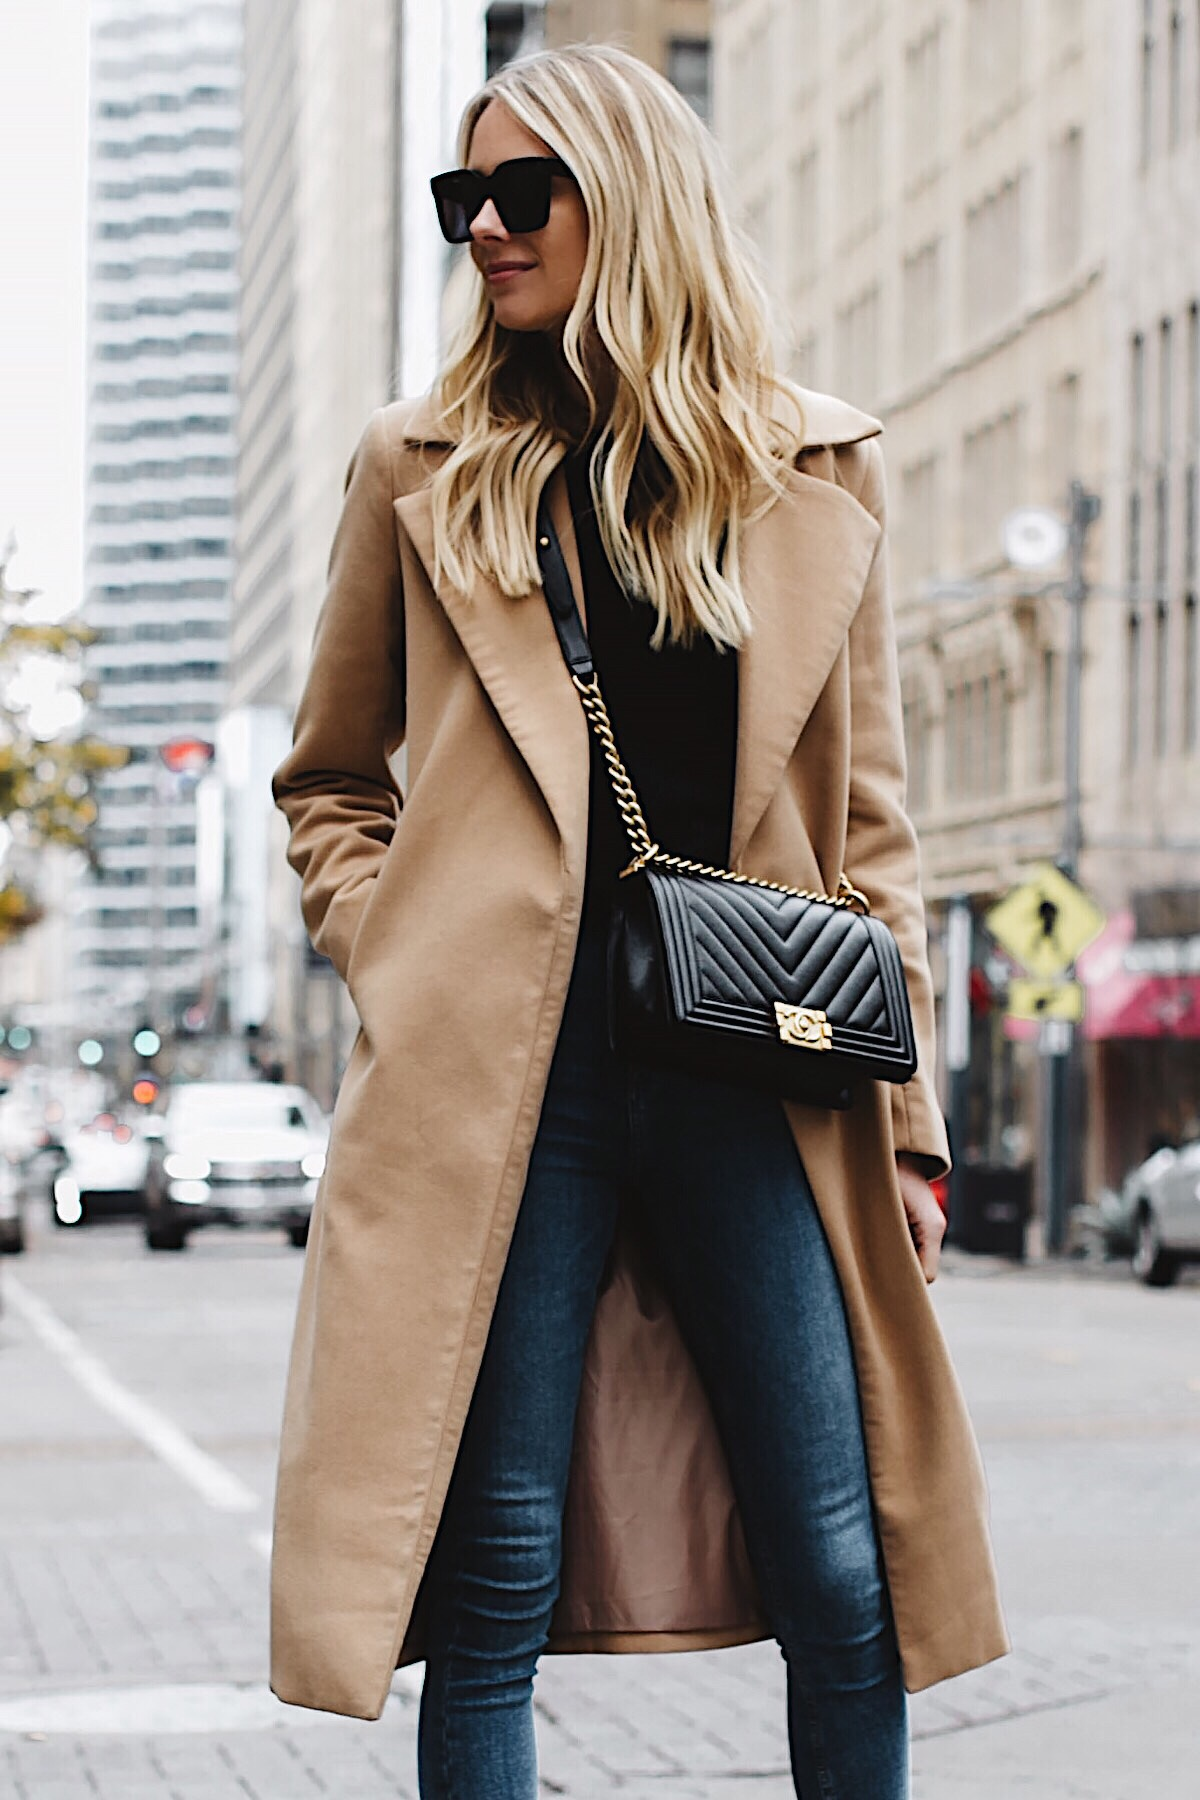 blonde woman wearing long camel coat black sweater topshop denim skinny jeans chanel black boy bag fashion jackson dallas blogger fashion blogger street style